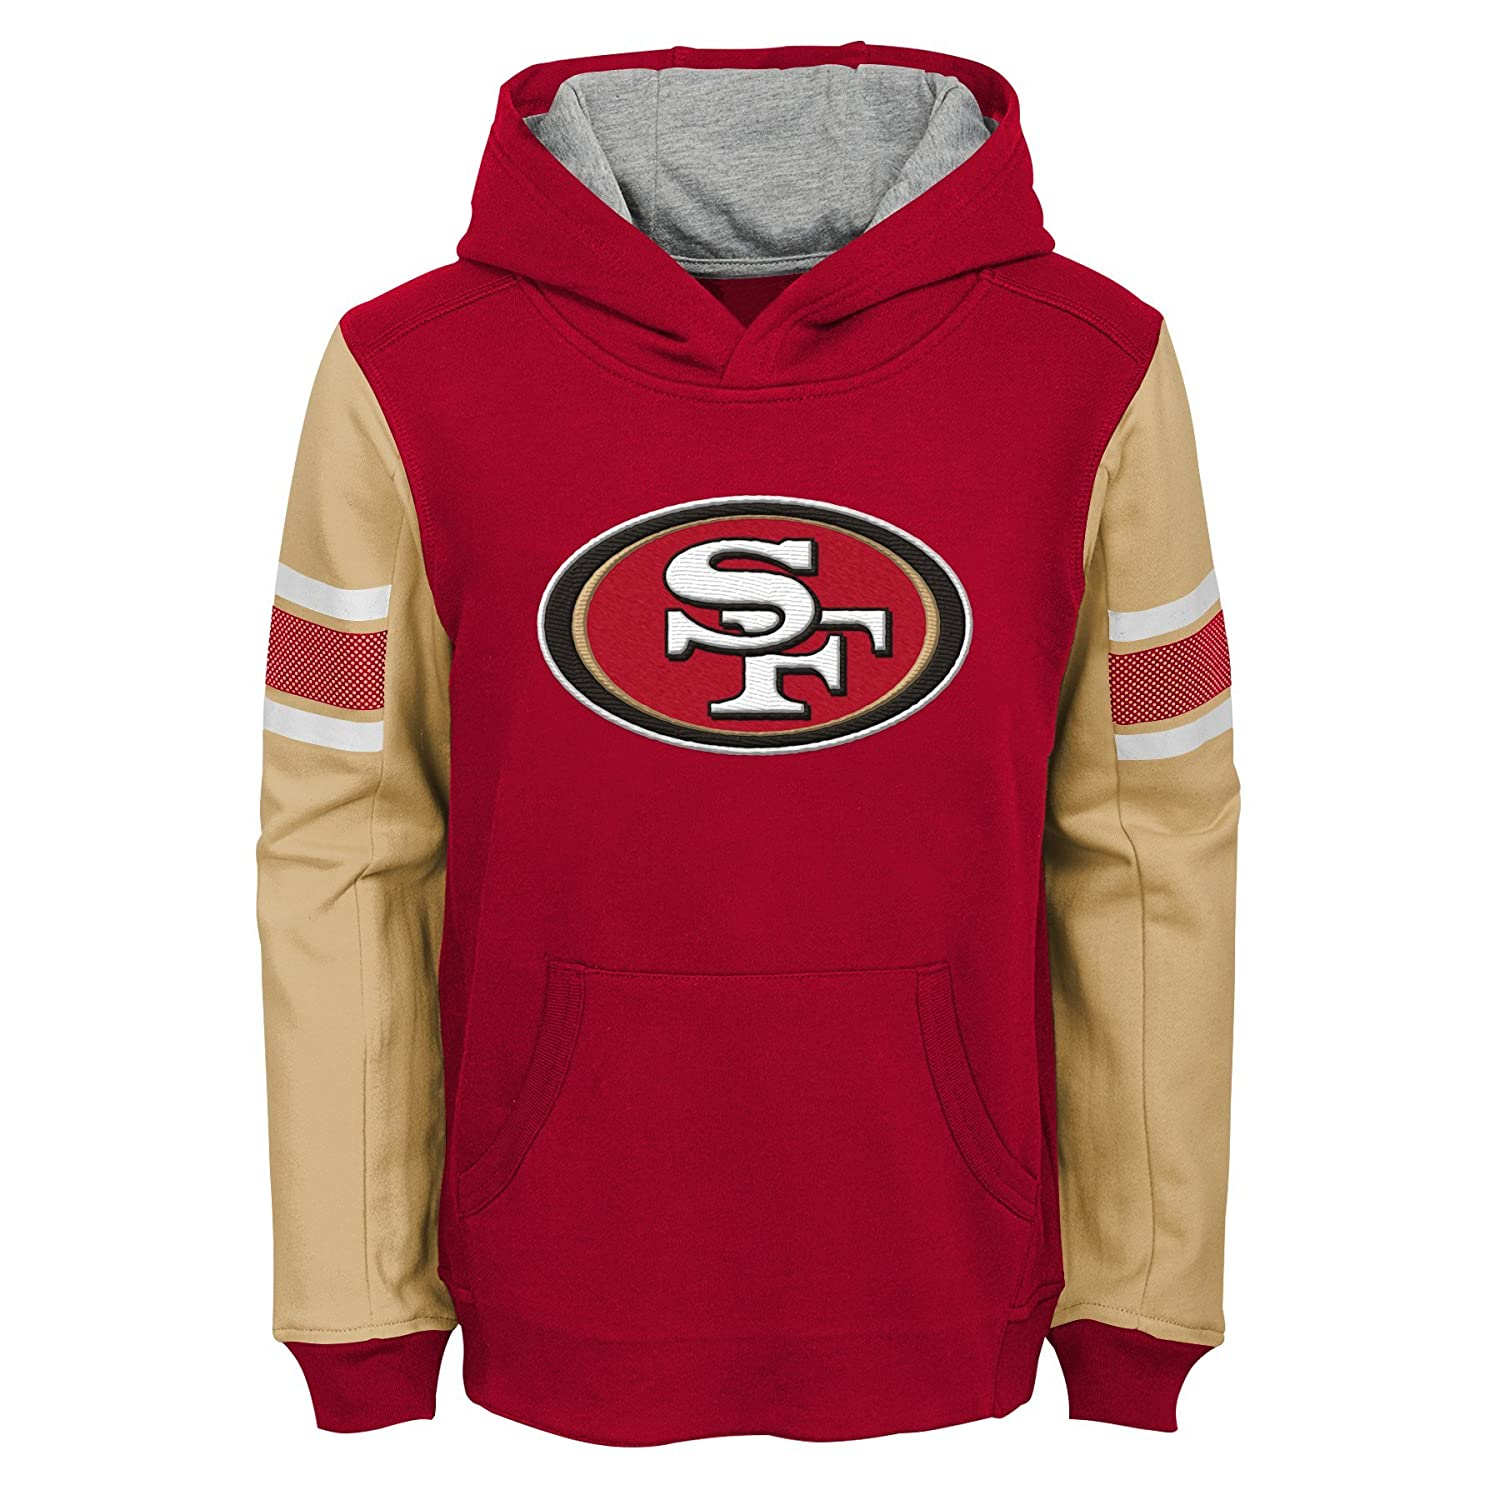 NFL Boys Kids   Youth Boys Man in Motion Pullover Hoodie 9K1B7FACX BRC  B80-BXL20 8c38d7e26